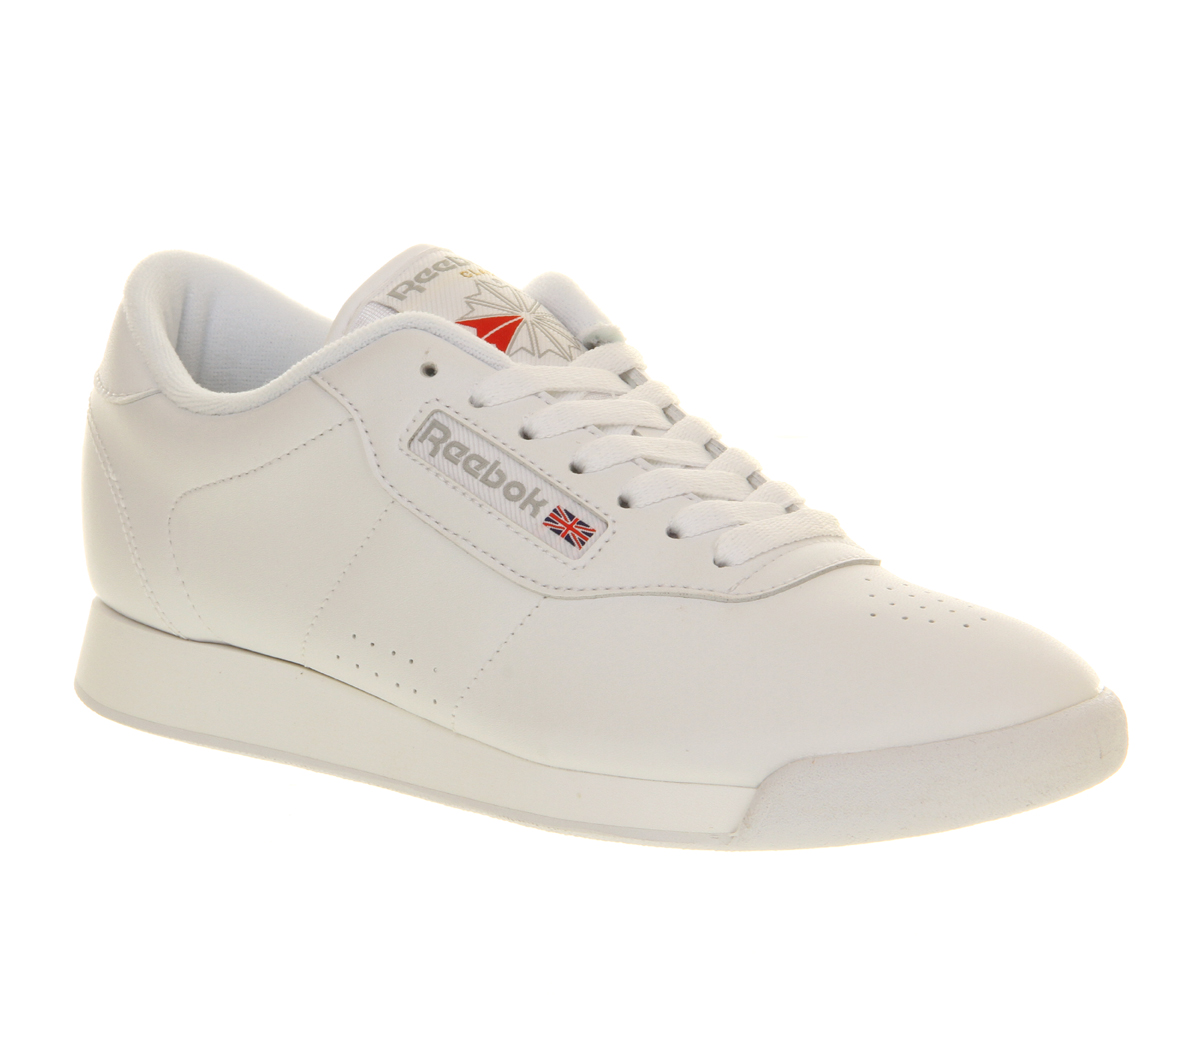 Womens leather trainer shoes